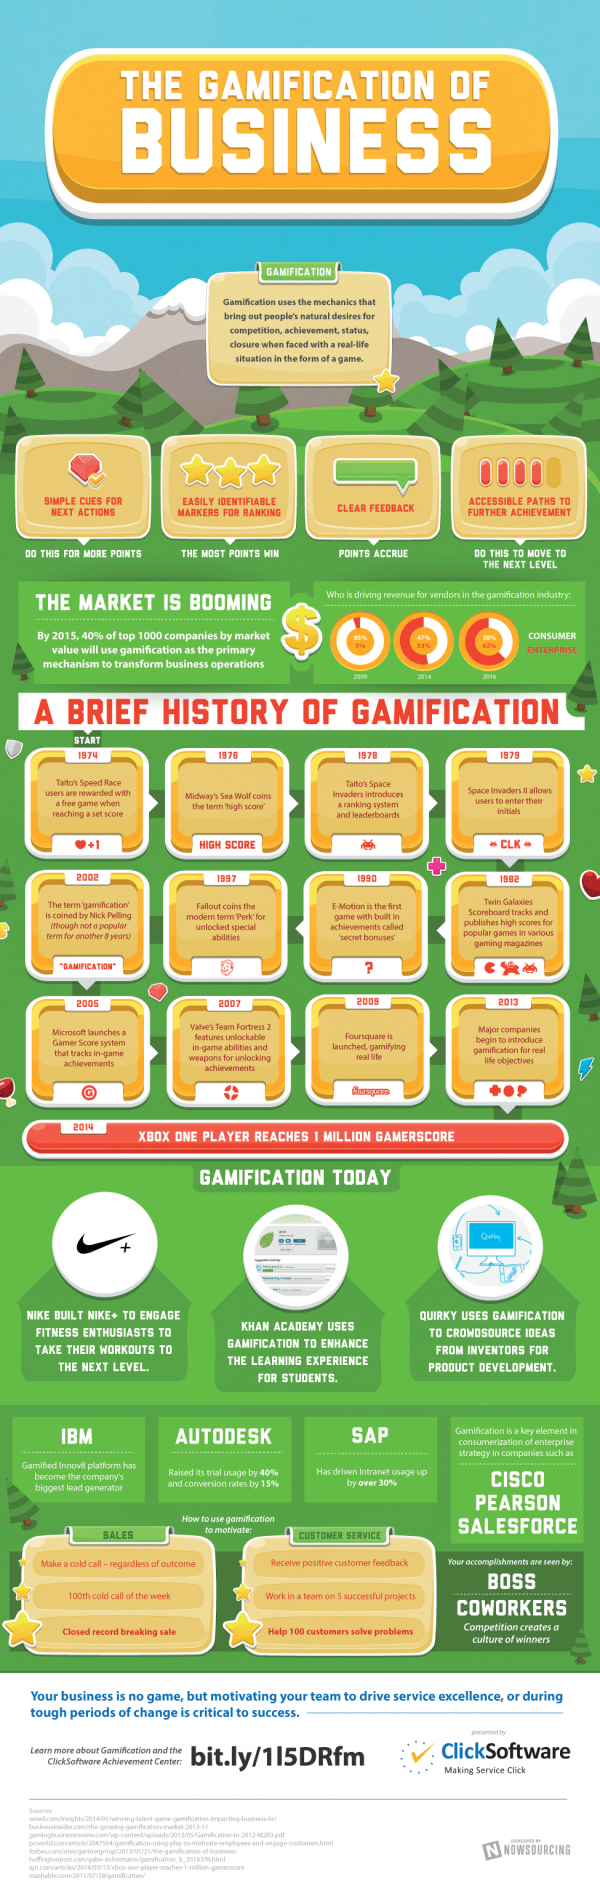 Infographic showing stats and key milestones of gamification design and implementation